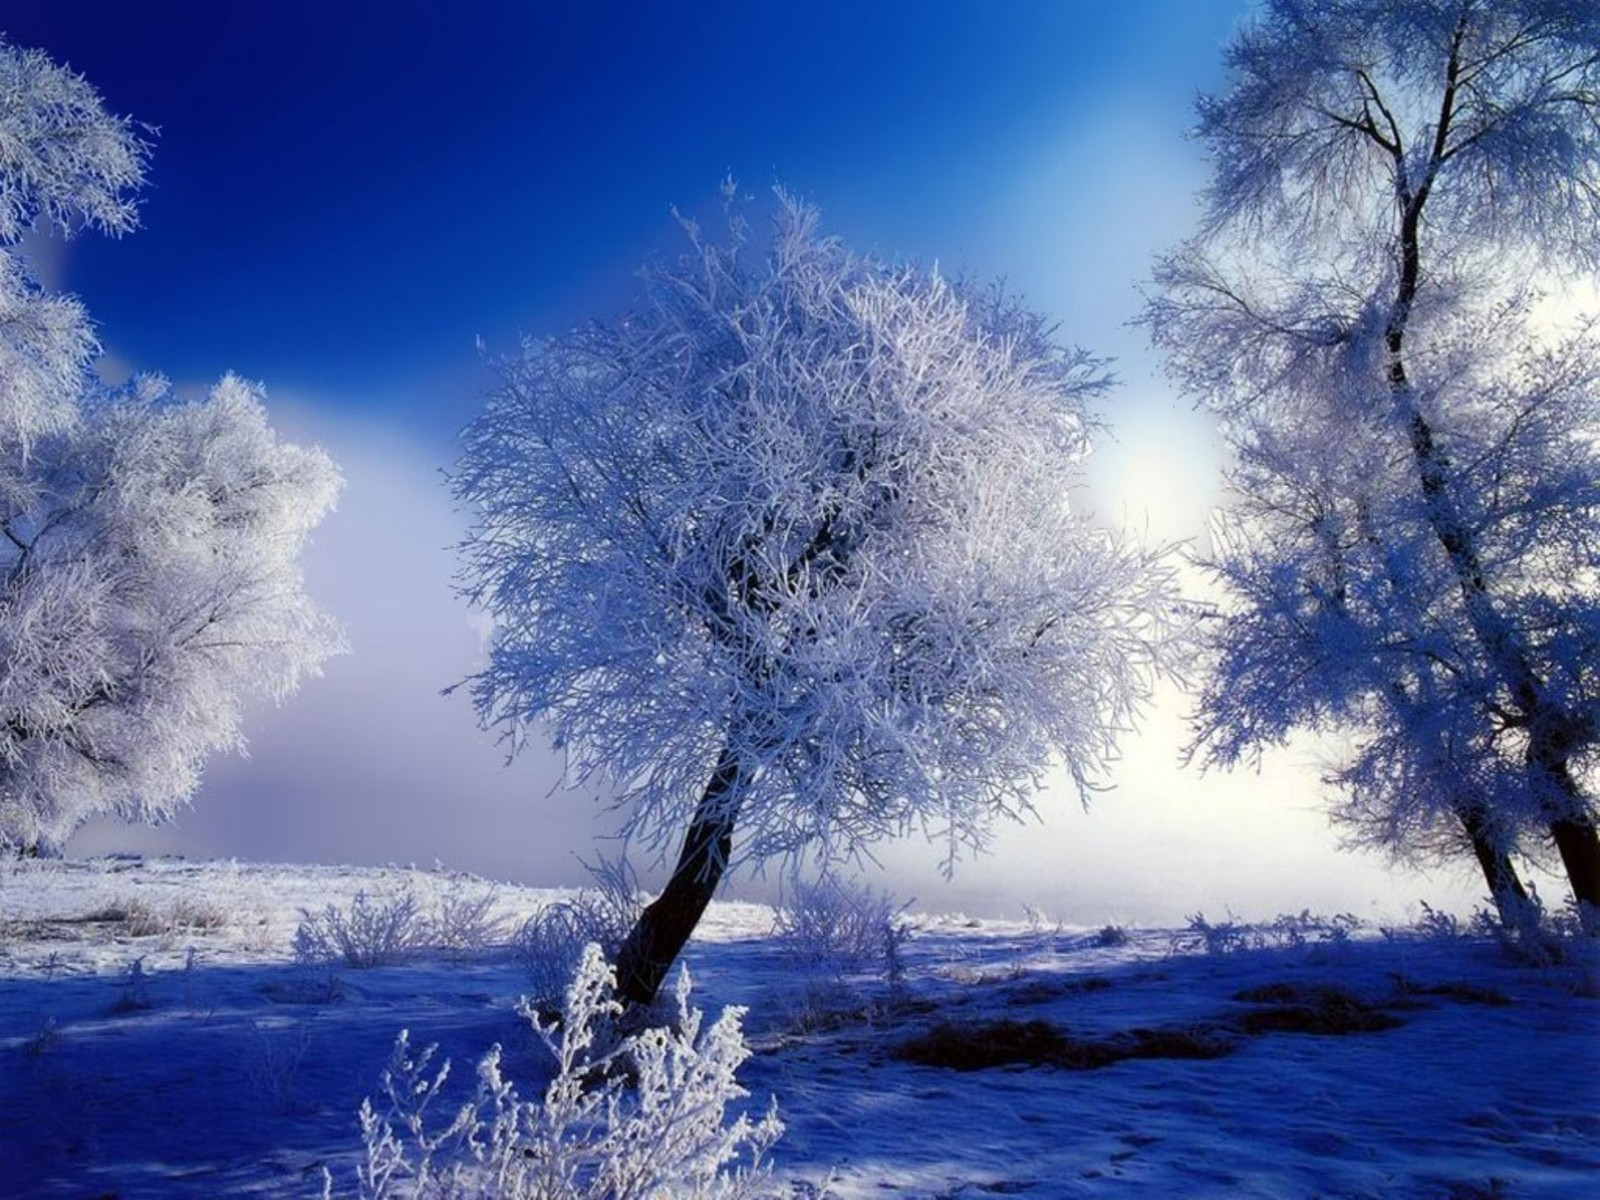 snow scenery full hd - photo #30